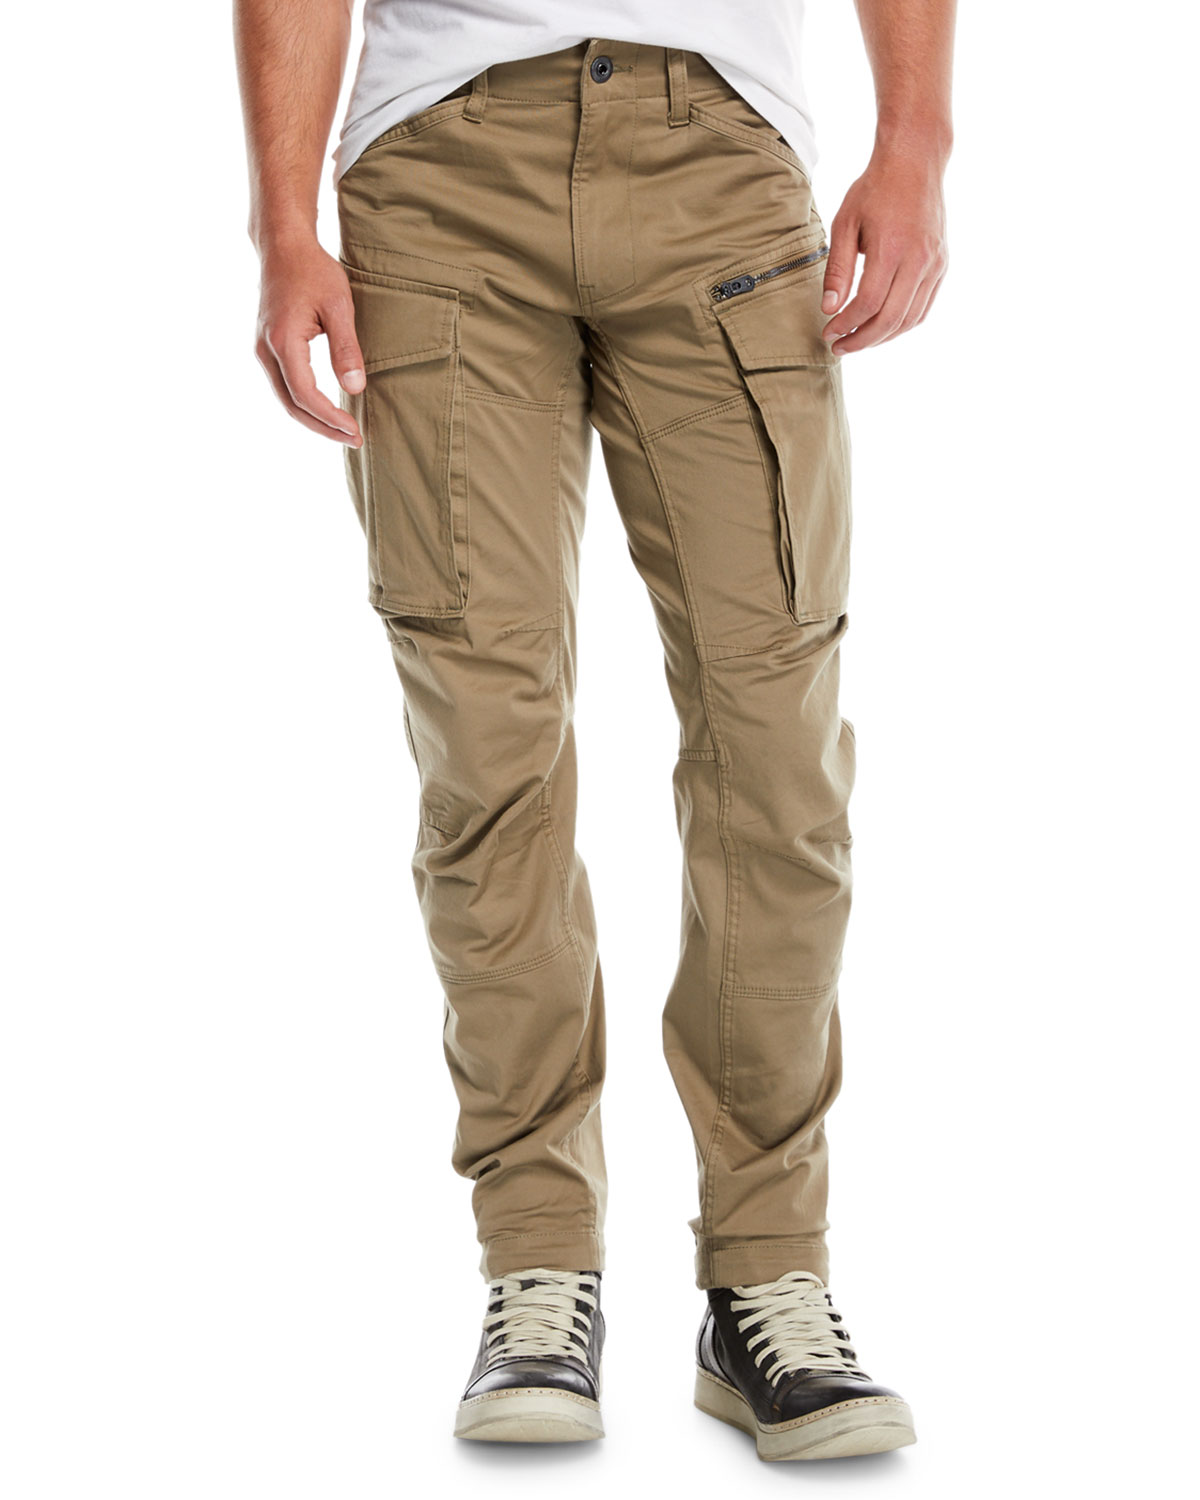 37e225afe15 G-Star Men's Rovic 3D Tapered Cargo Pants | Neiman Marcus